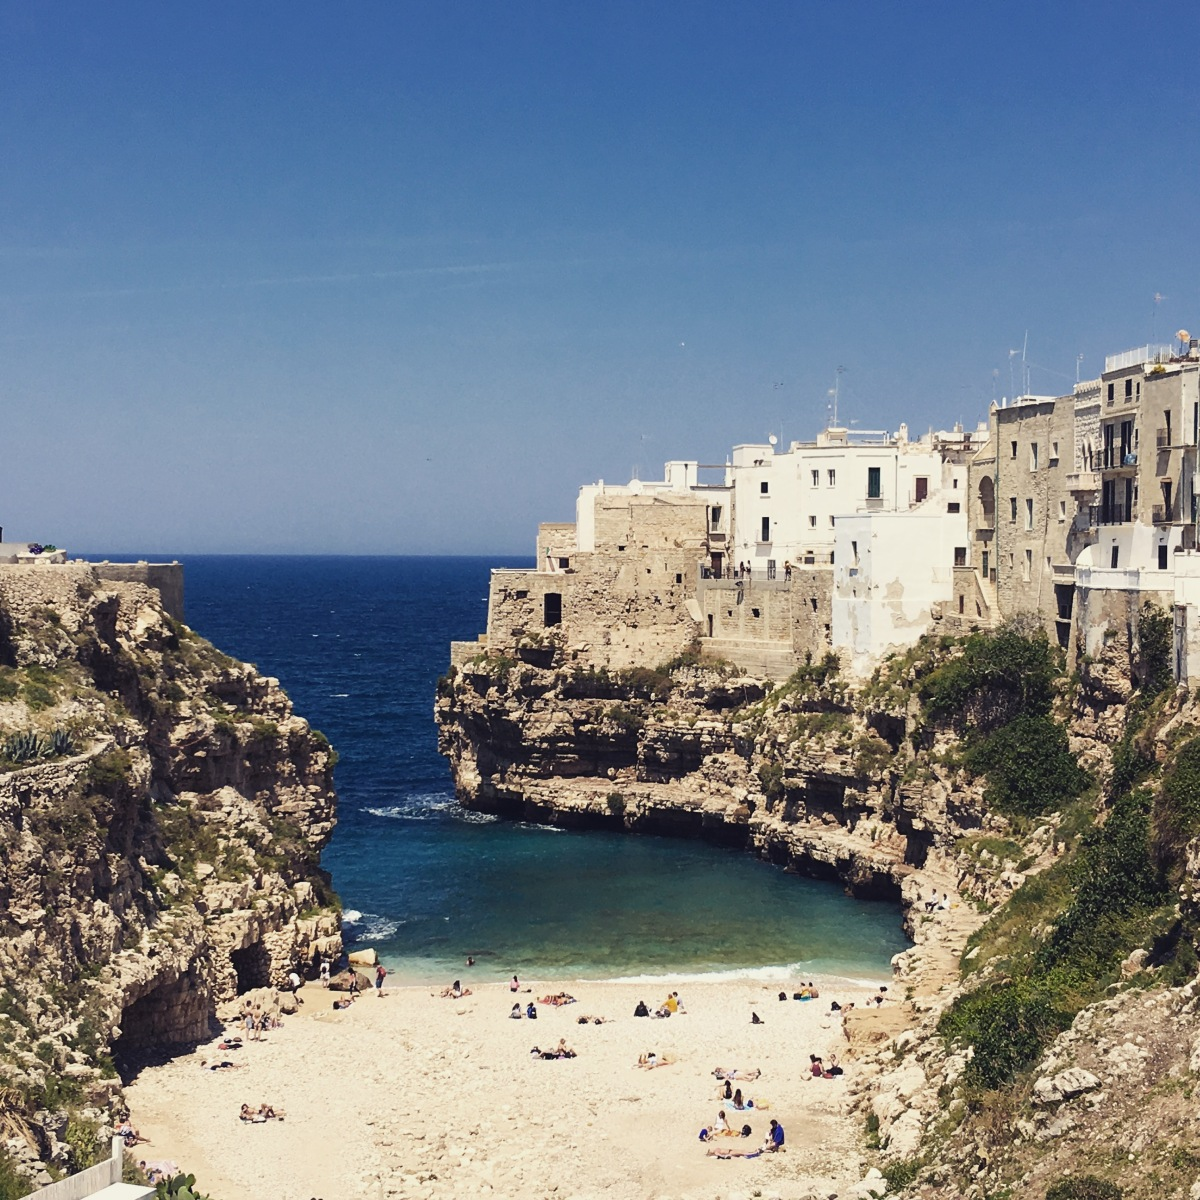 Destination 1: Polignano a Mare - 2 Nights